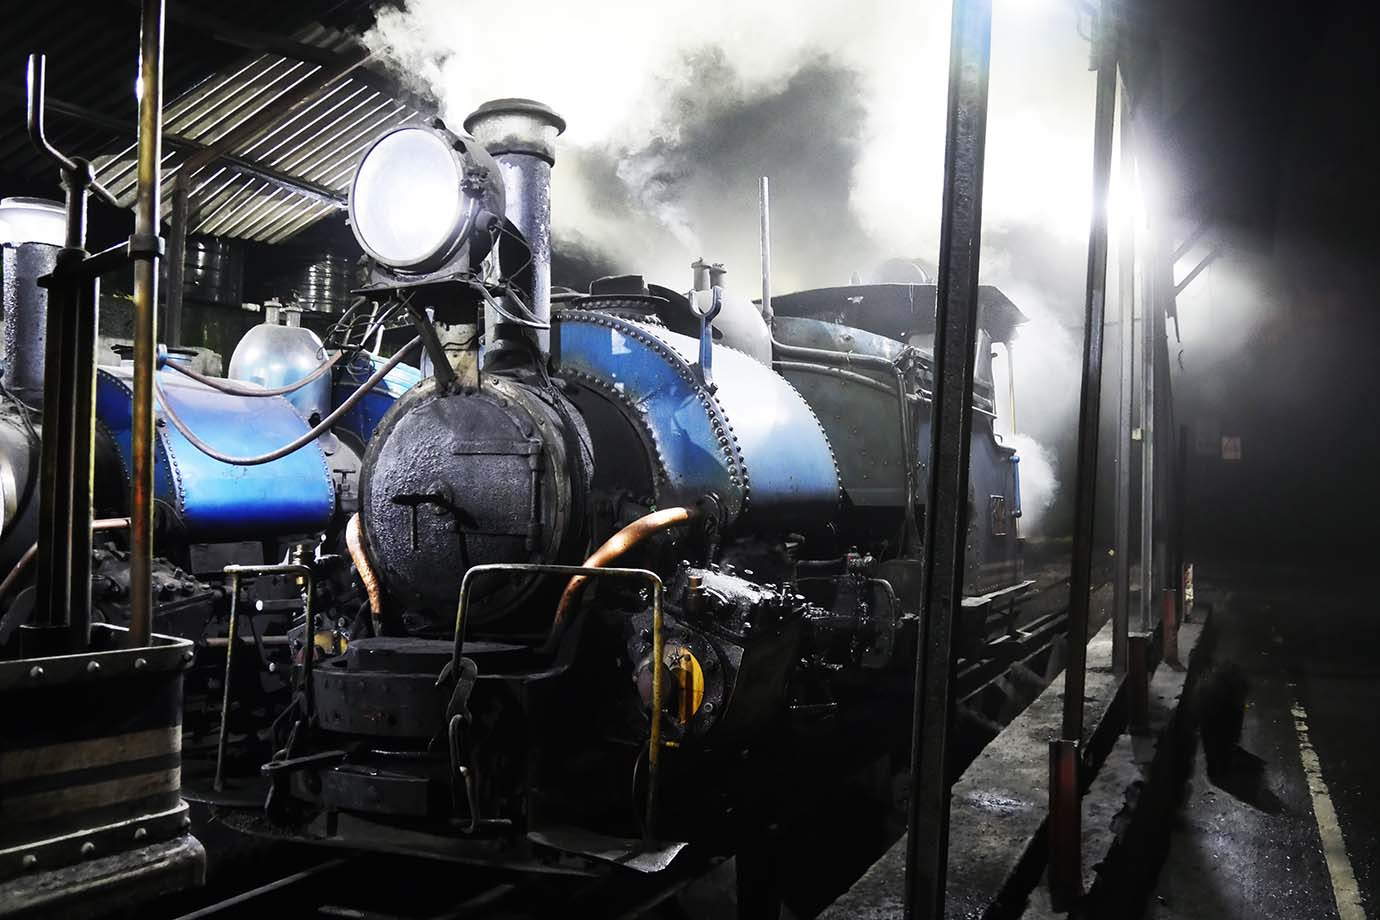 ride-darjeeling-railway-india10